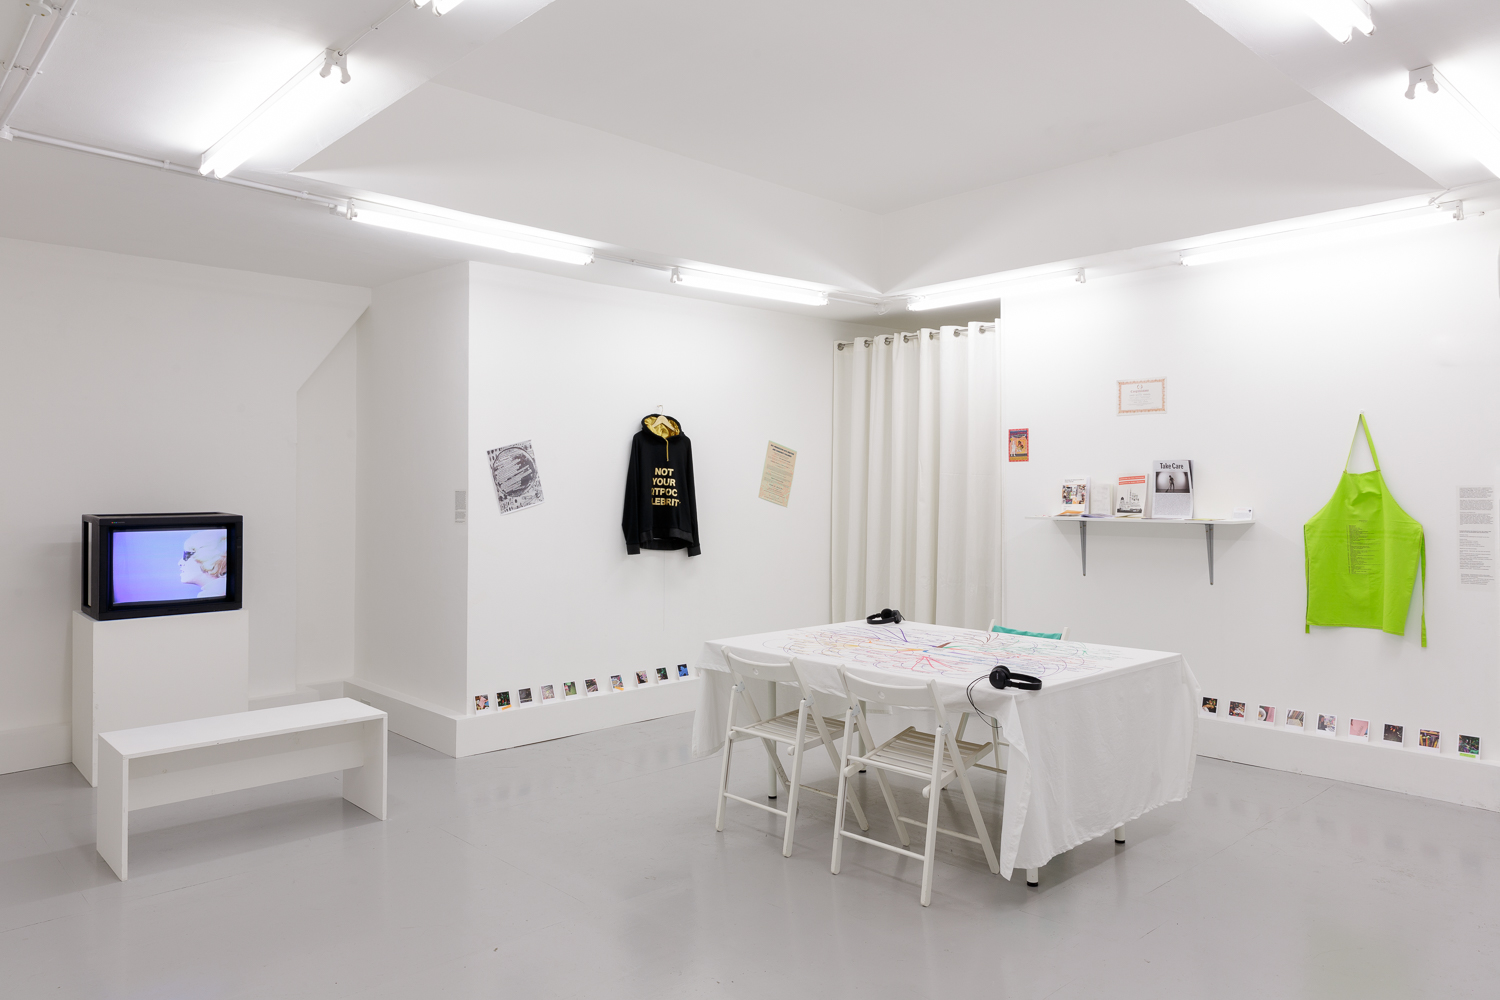 Installation view. Photo: Tim Bowditch